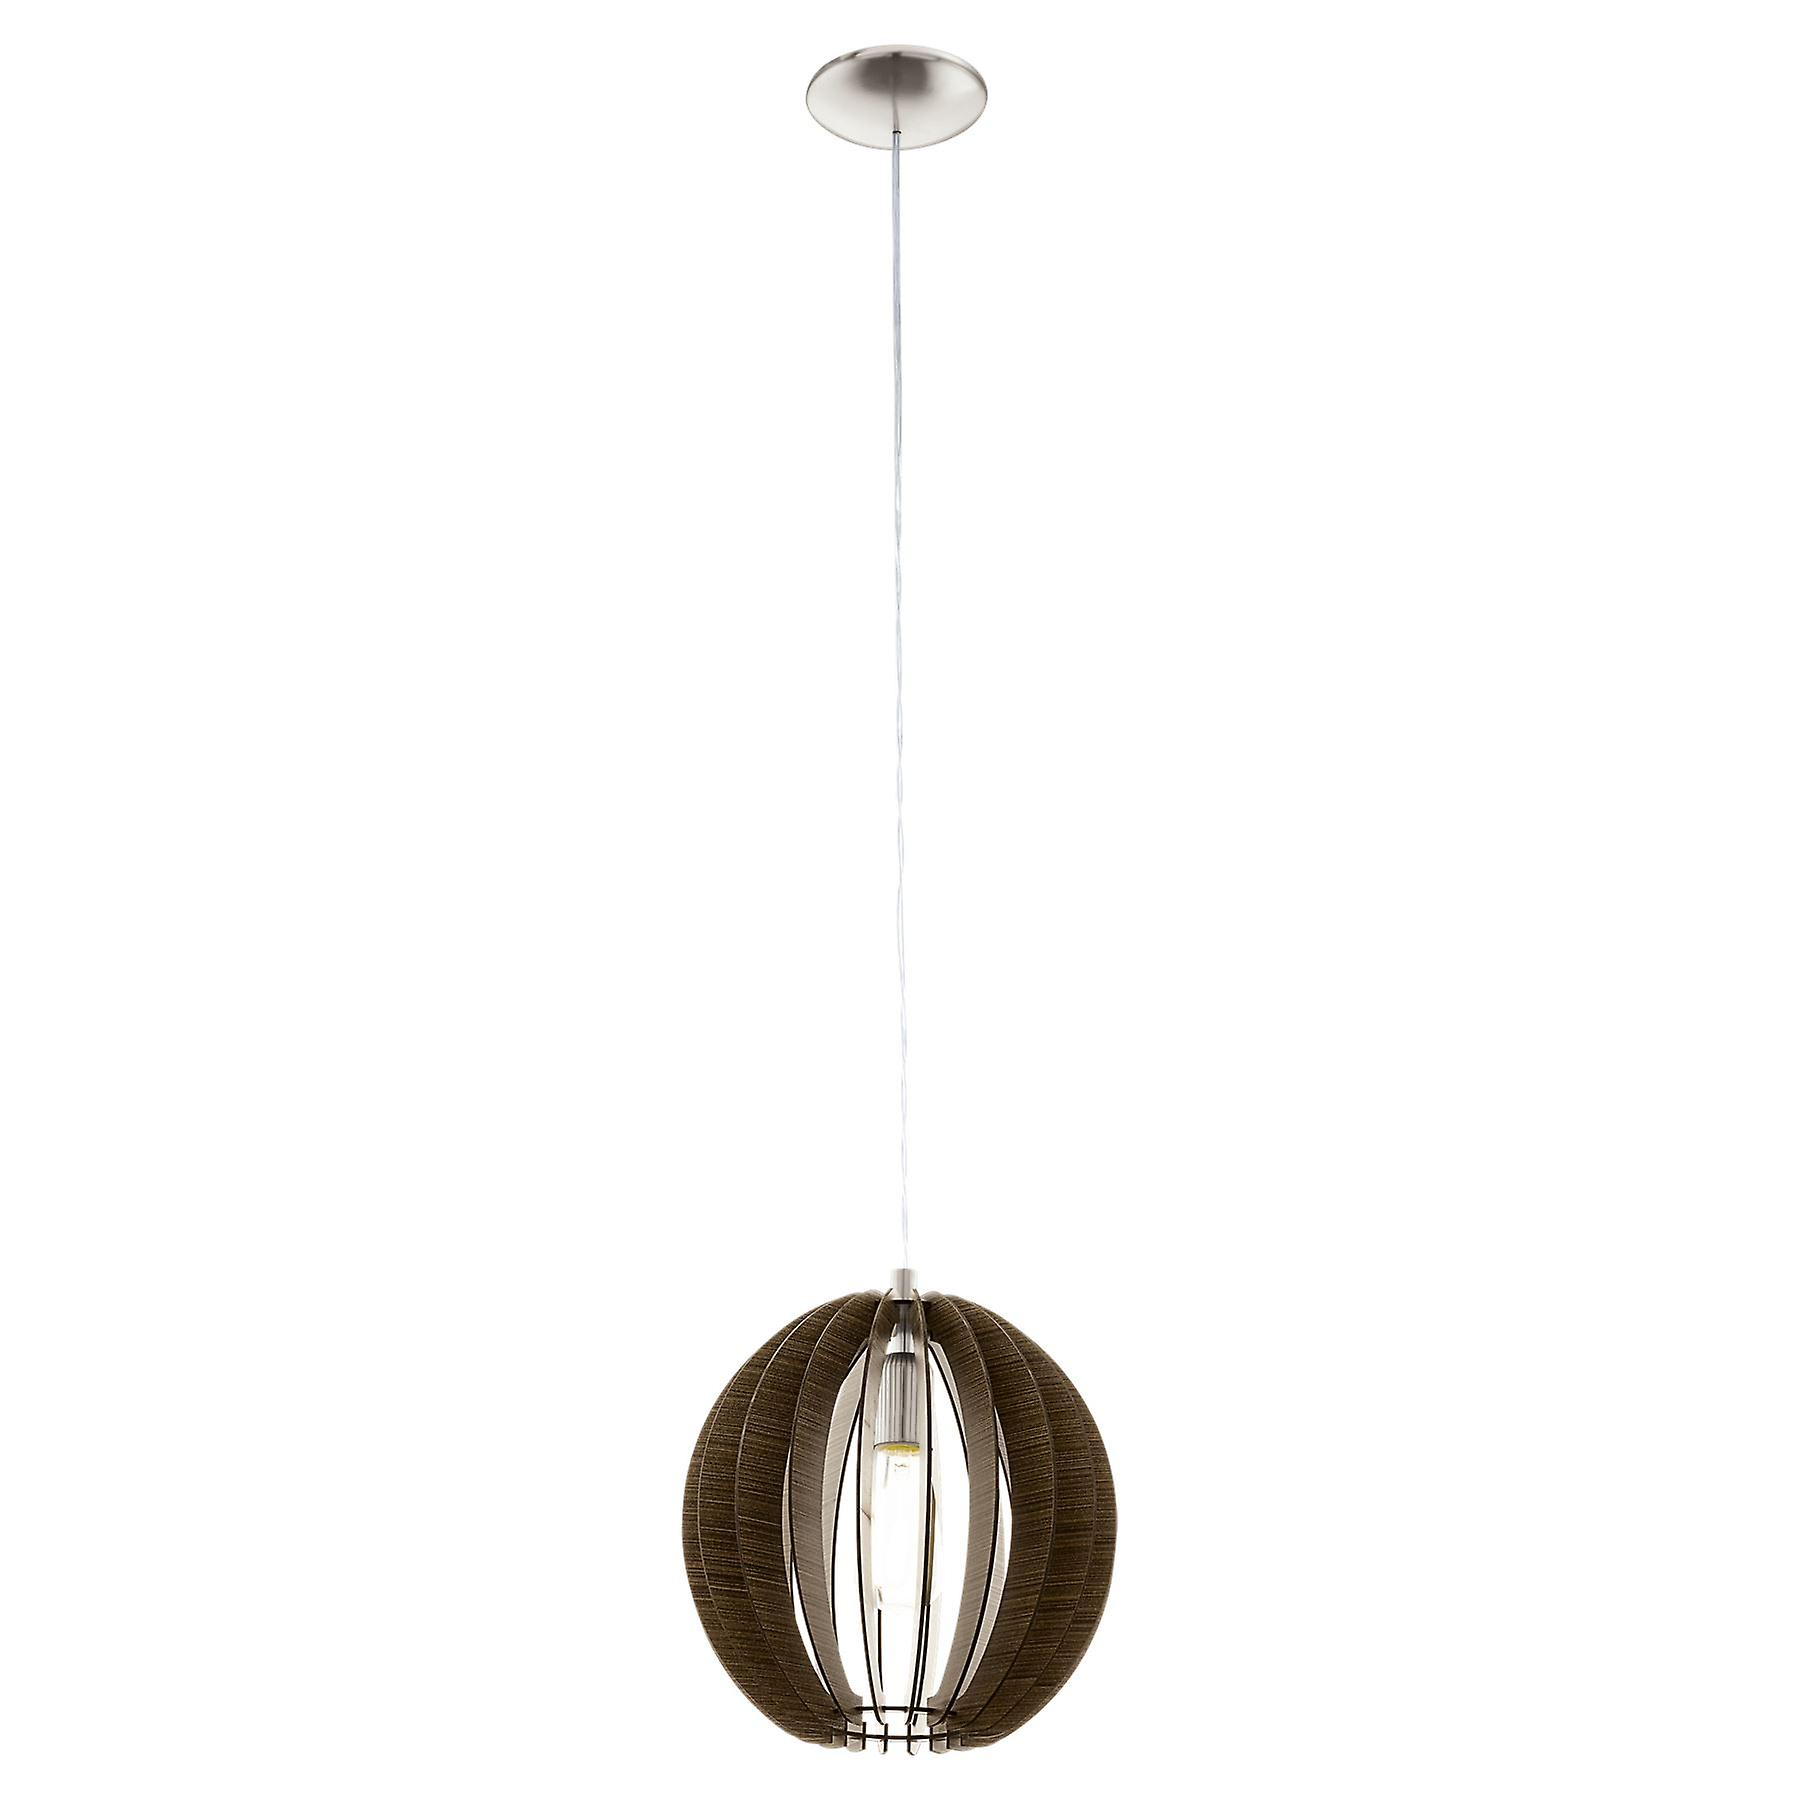 Eglo - Cossano Medium Single lumière Ceiling pendentif In Satin Nickel And Dark bois Finish EG94635